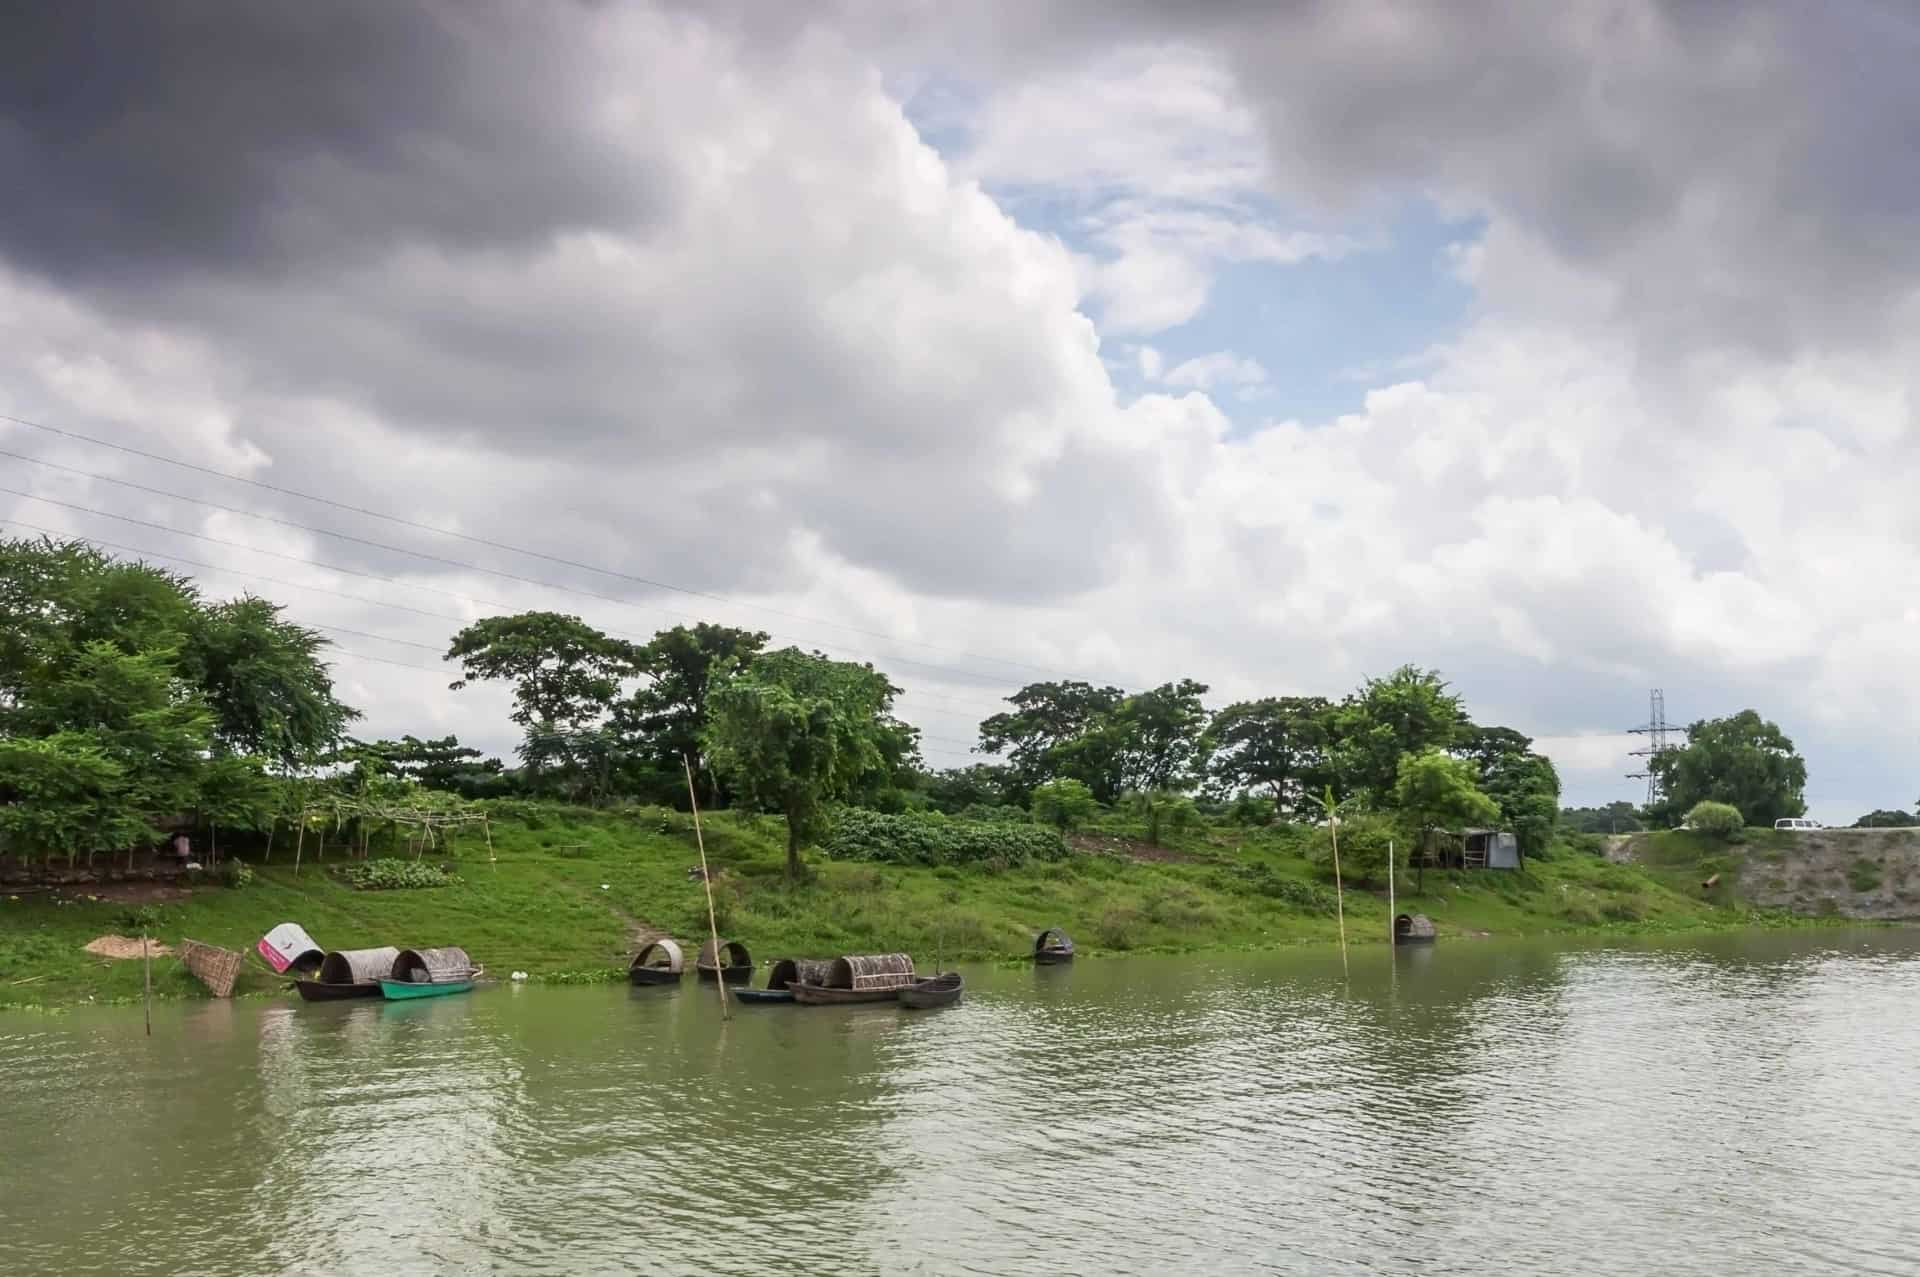 In the rainy season, on the outskirts of Dhaka, capital of Bangladesh, all fields are filled with water